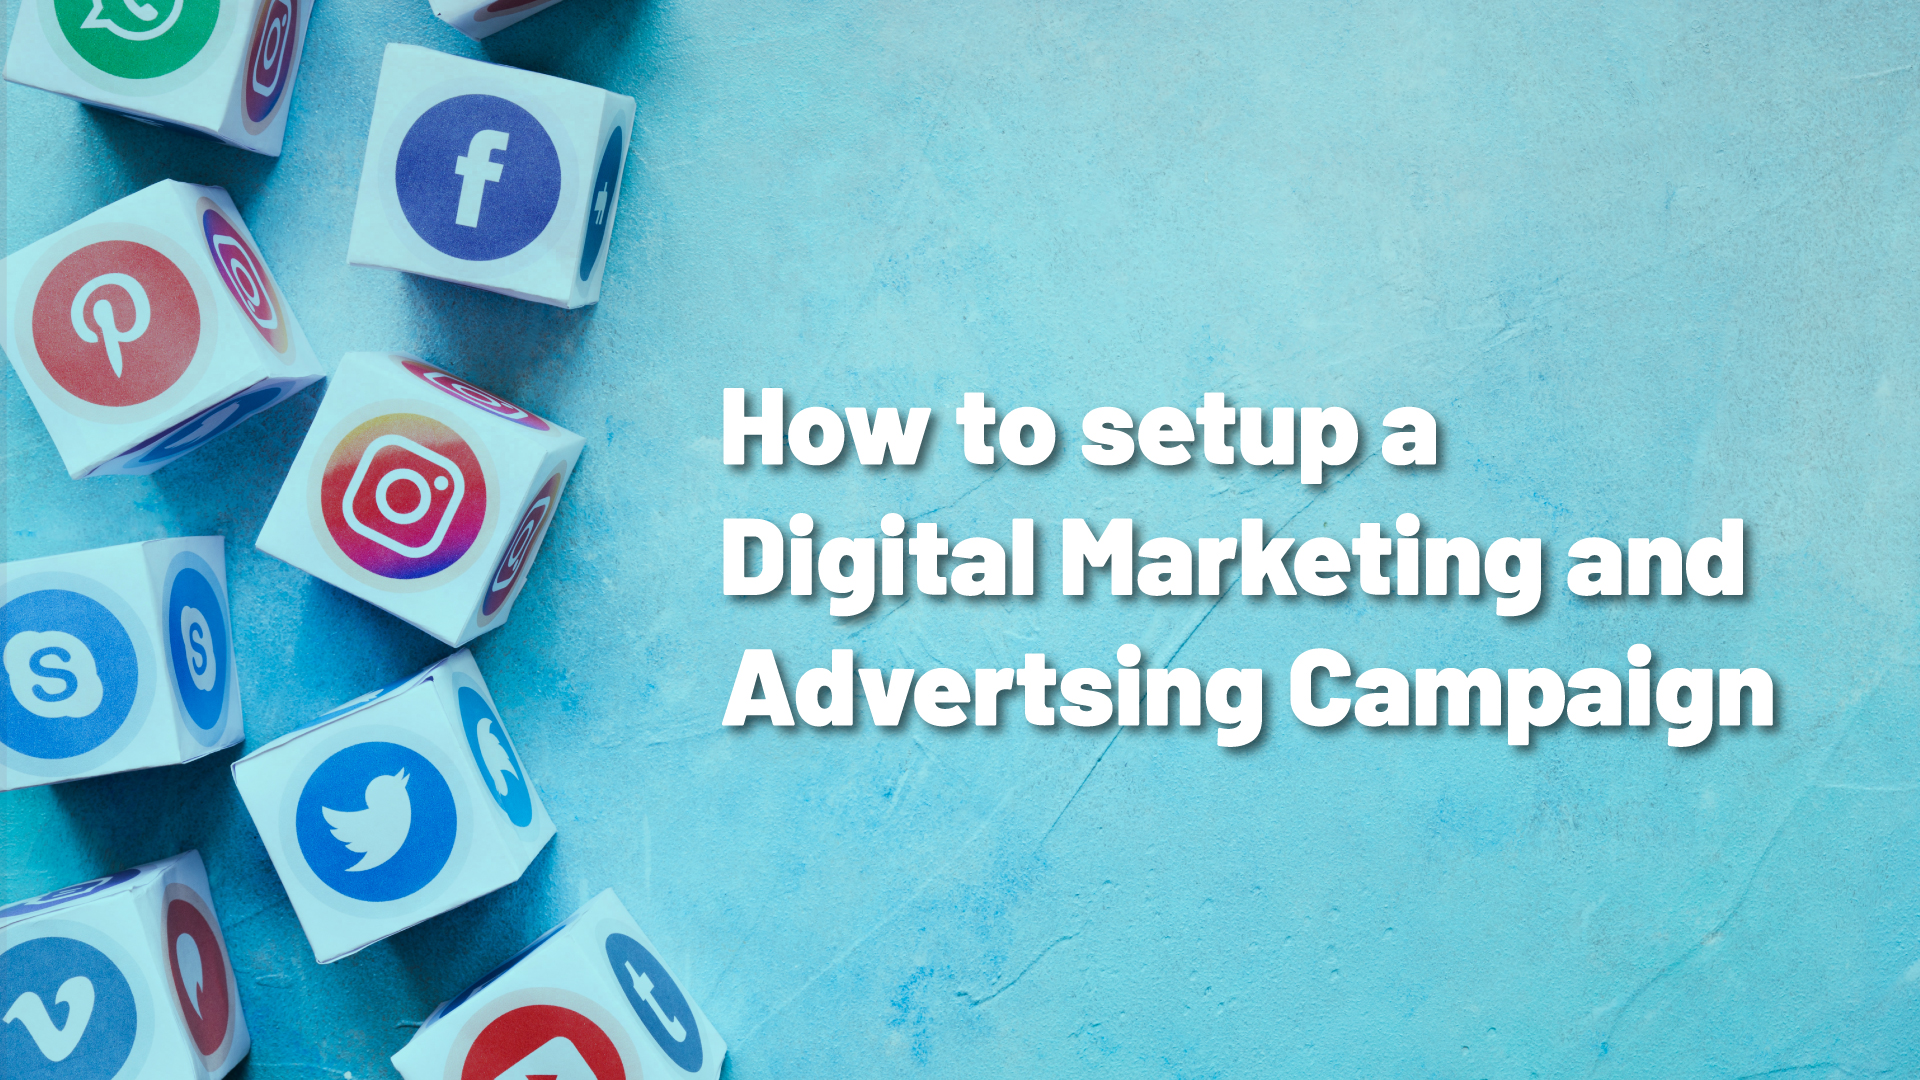 How to Set Up a Digital Marketing and Advertising Campaign